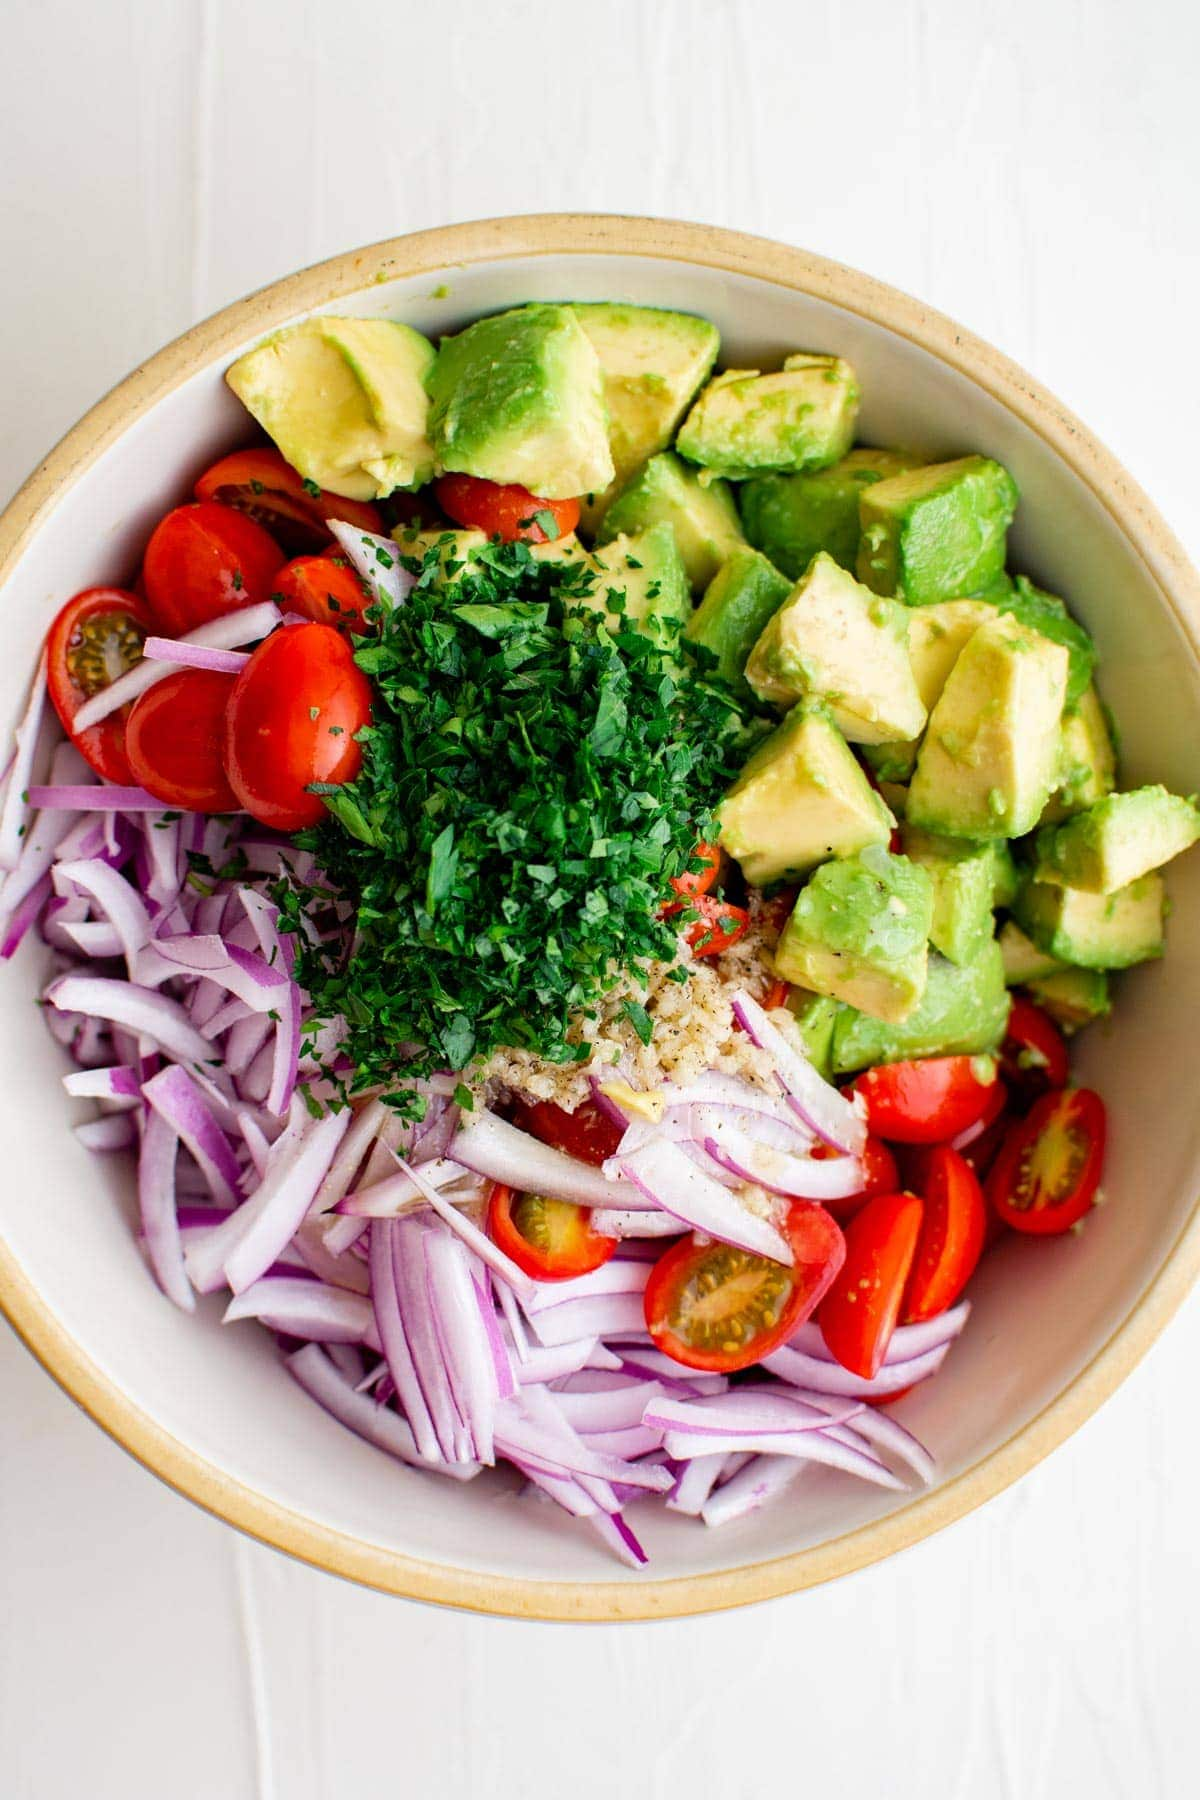 chopped avocados, tomatoes, parsley, sliced red onions in a white bowl